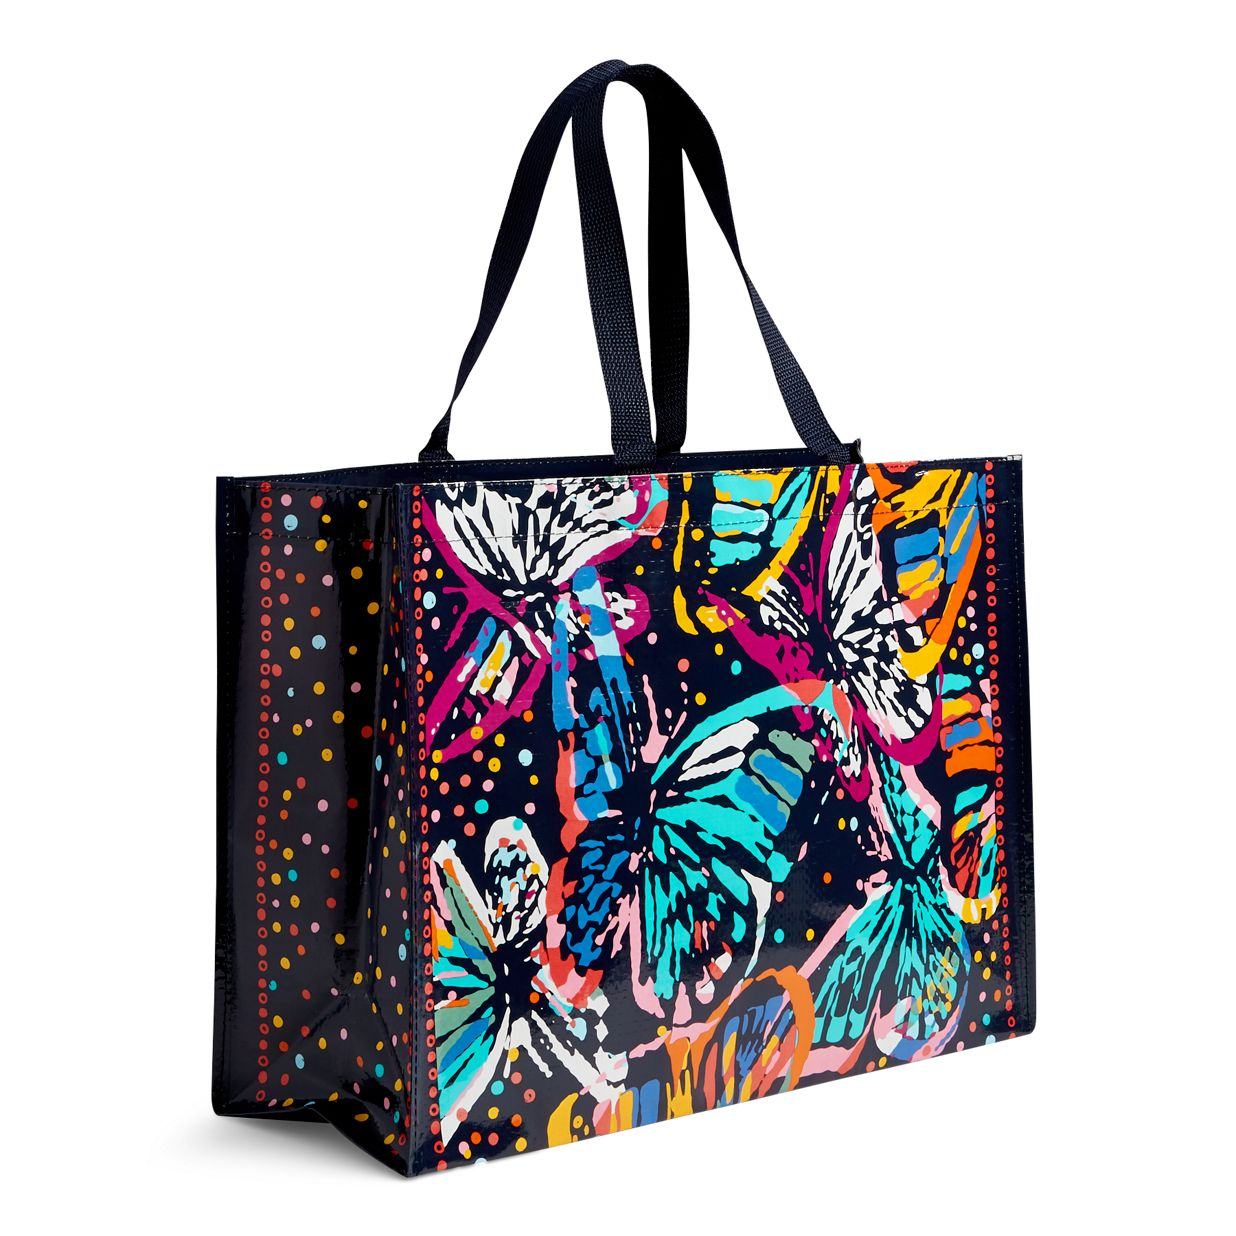 abfff9cab6 Image of Market Tote in Butterfly Flutter ...